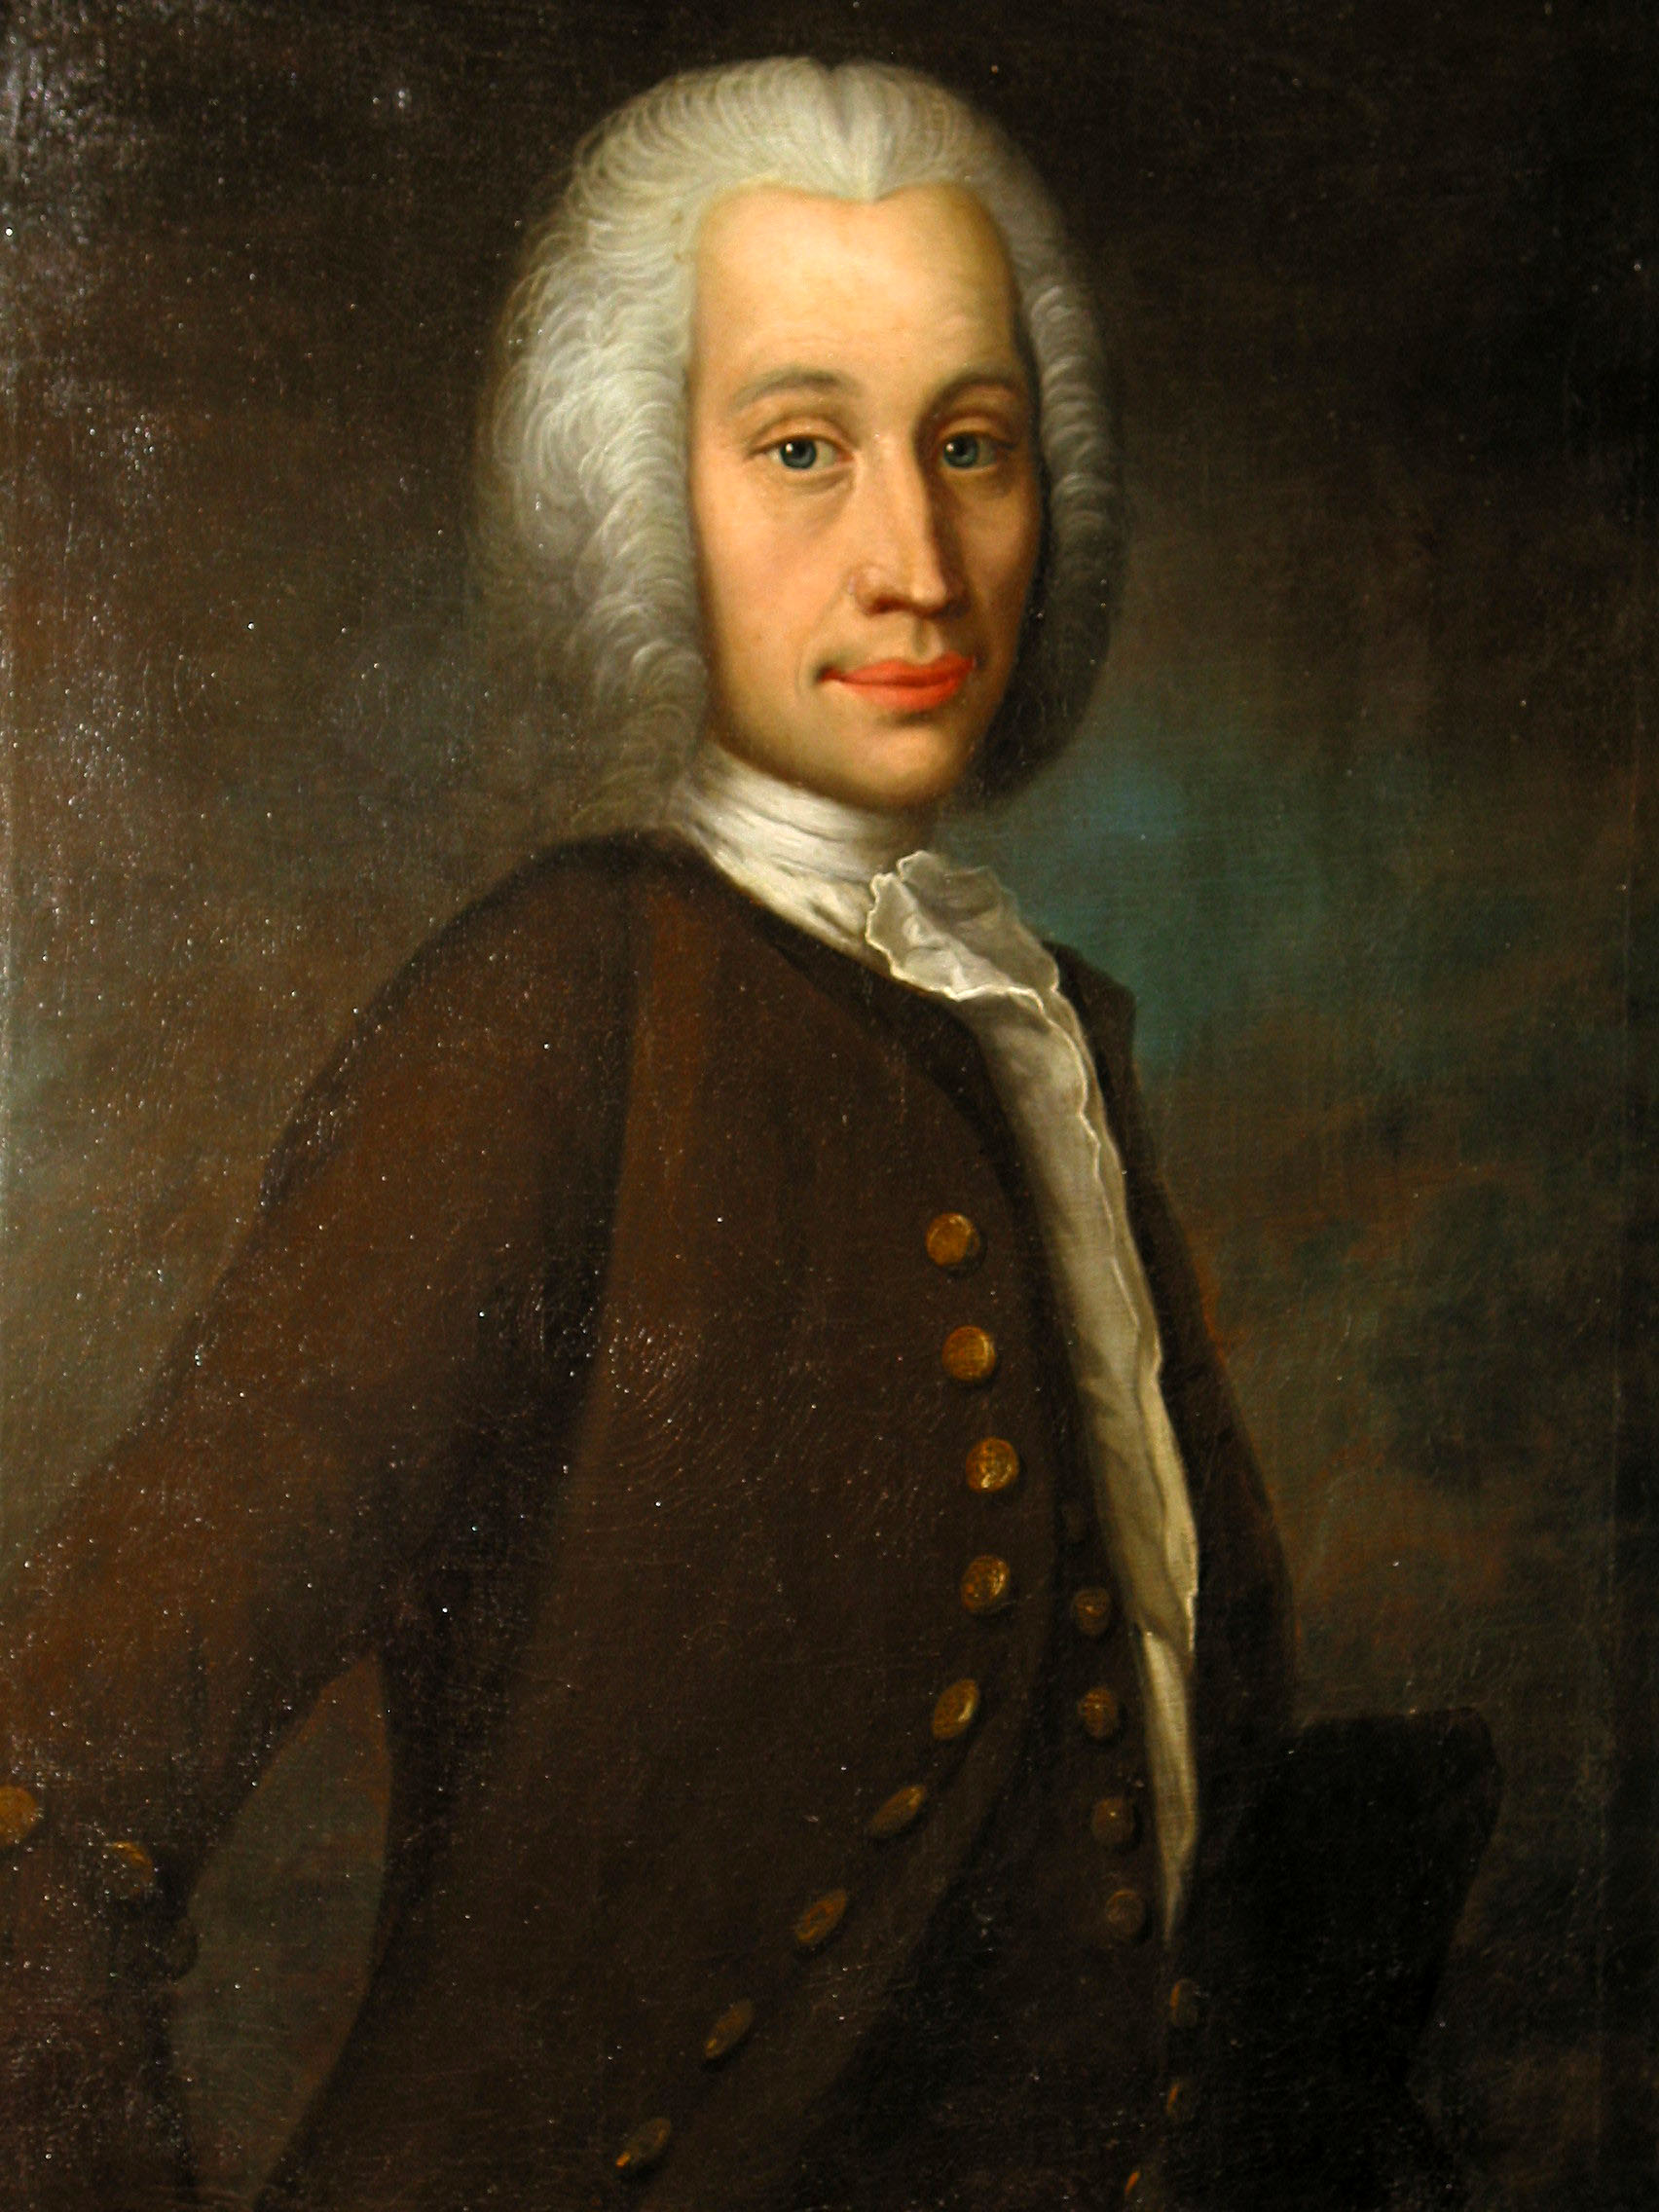 Anders Celsius portret